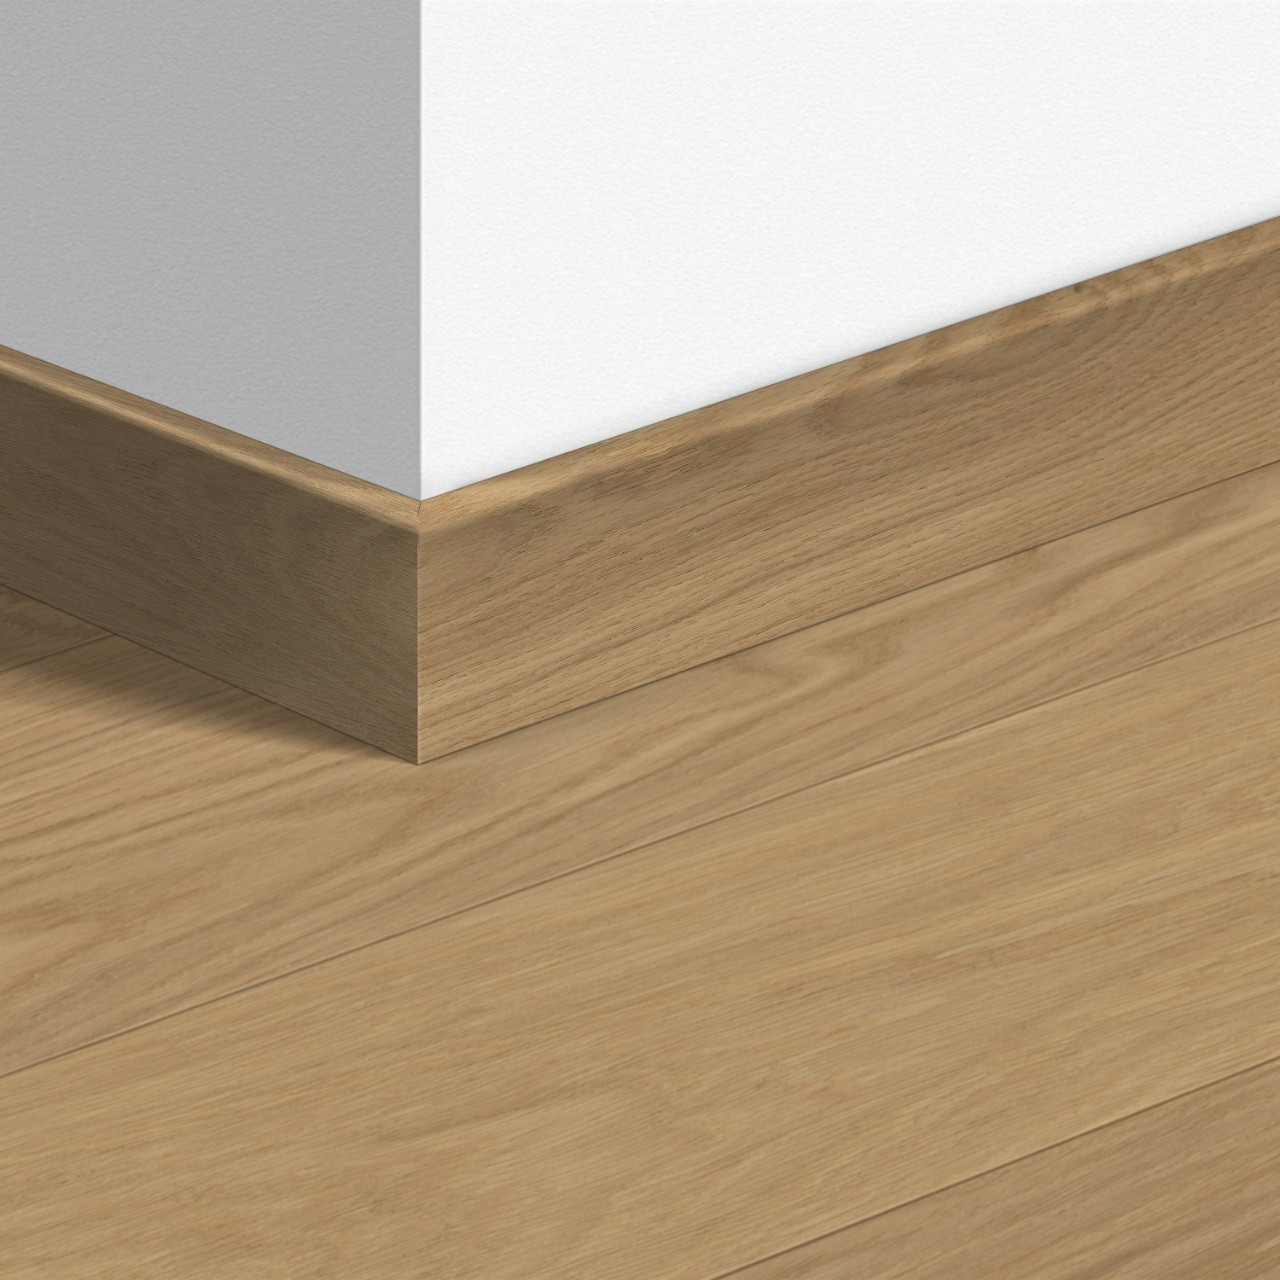 QSWPPSKR Parquet Accessories Parquet Skirting Board (matching colour) QSWPPSKR03095